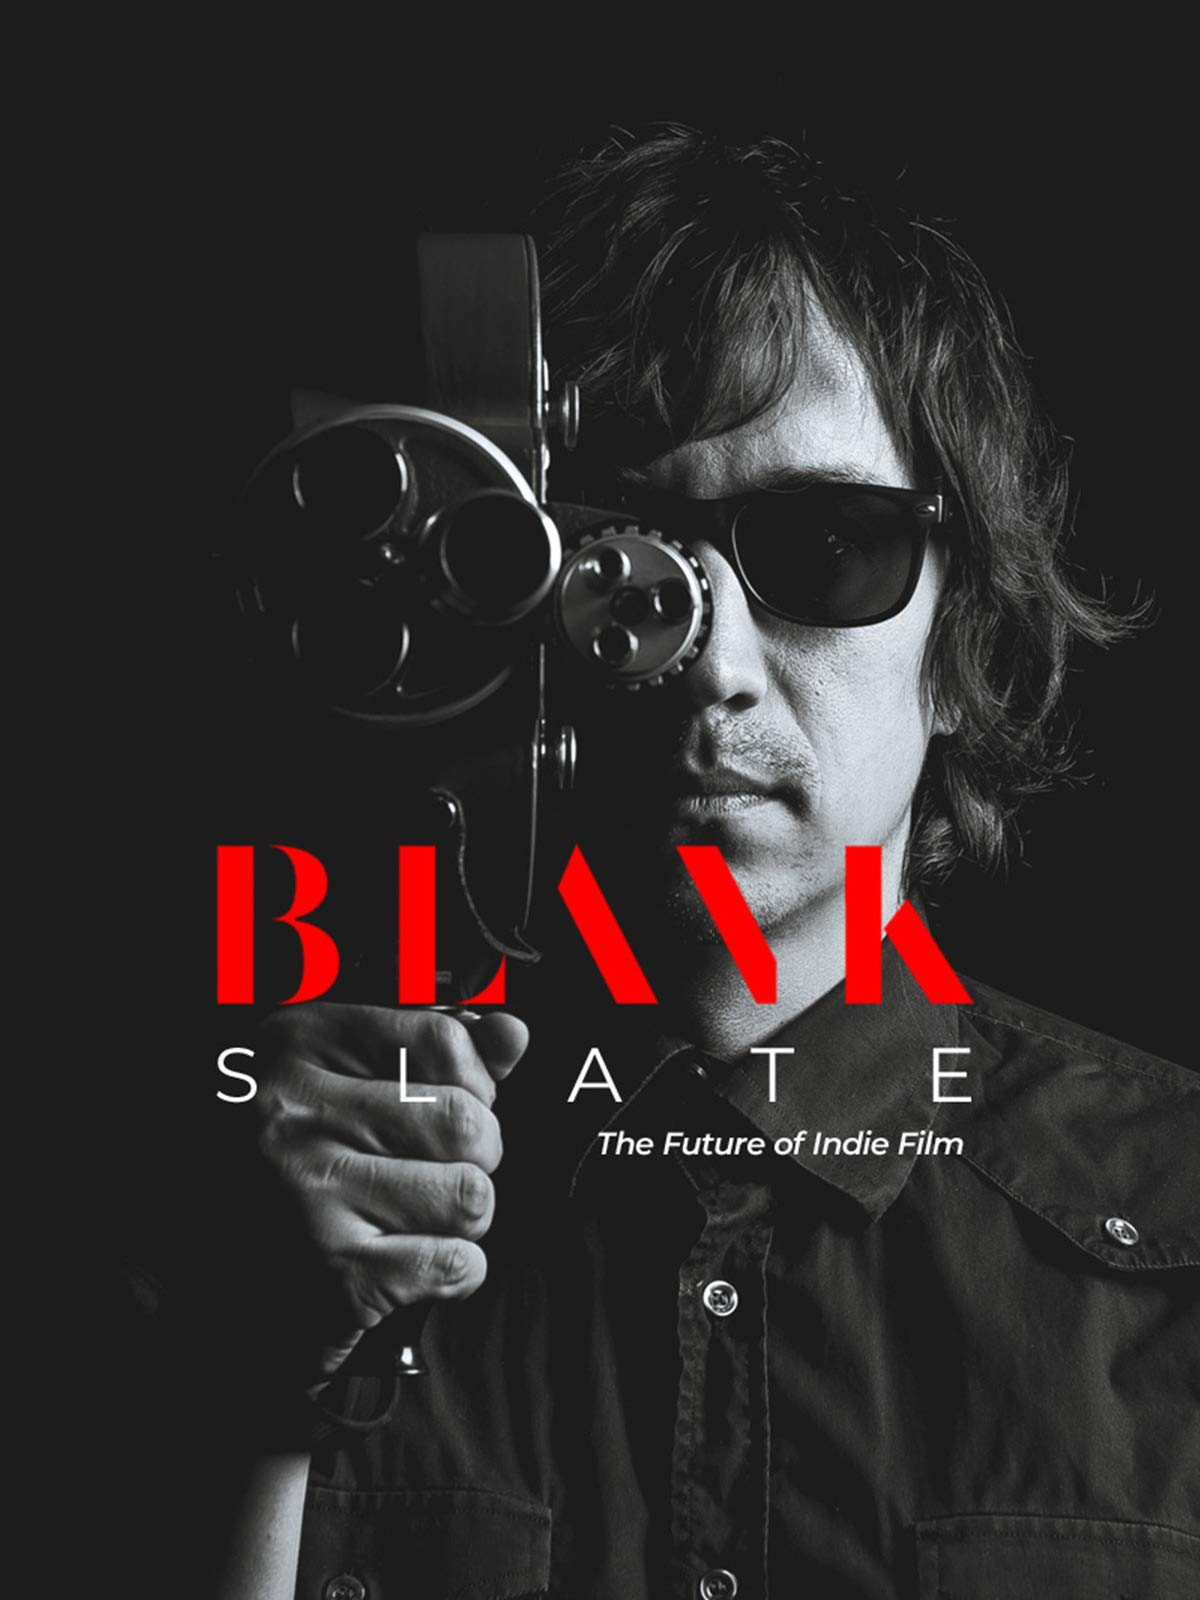 Blank Slate: The Future of Indie Film